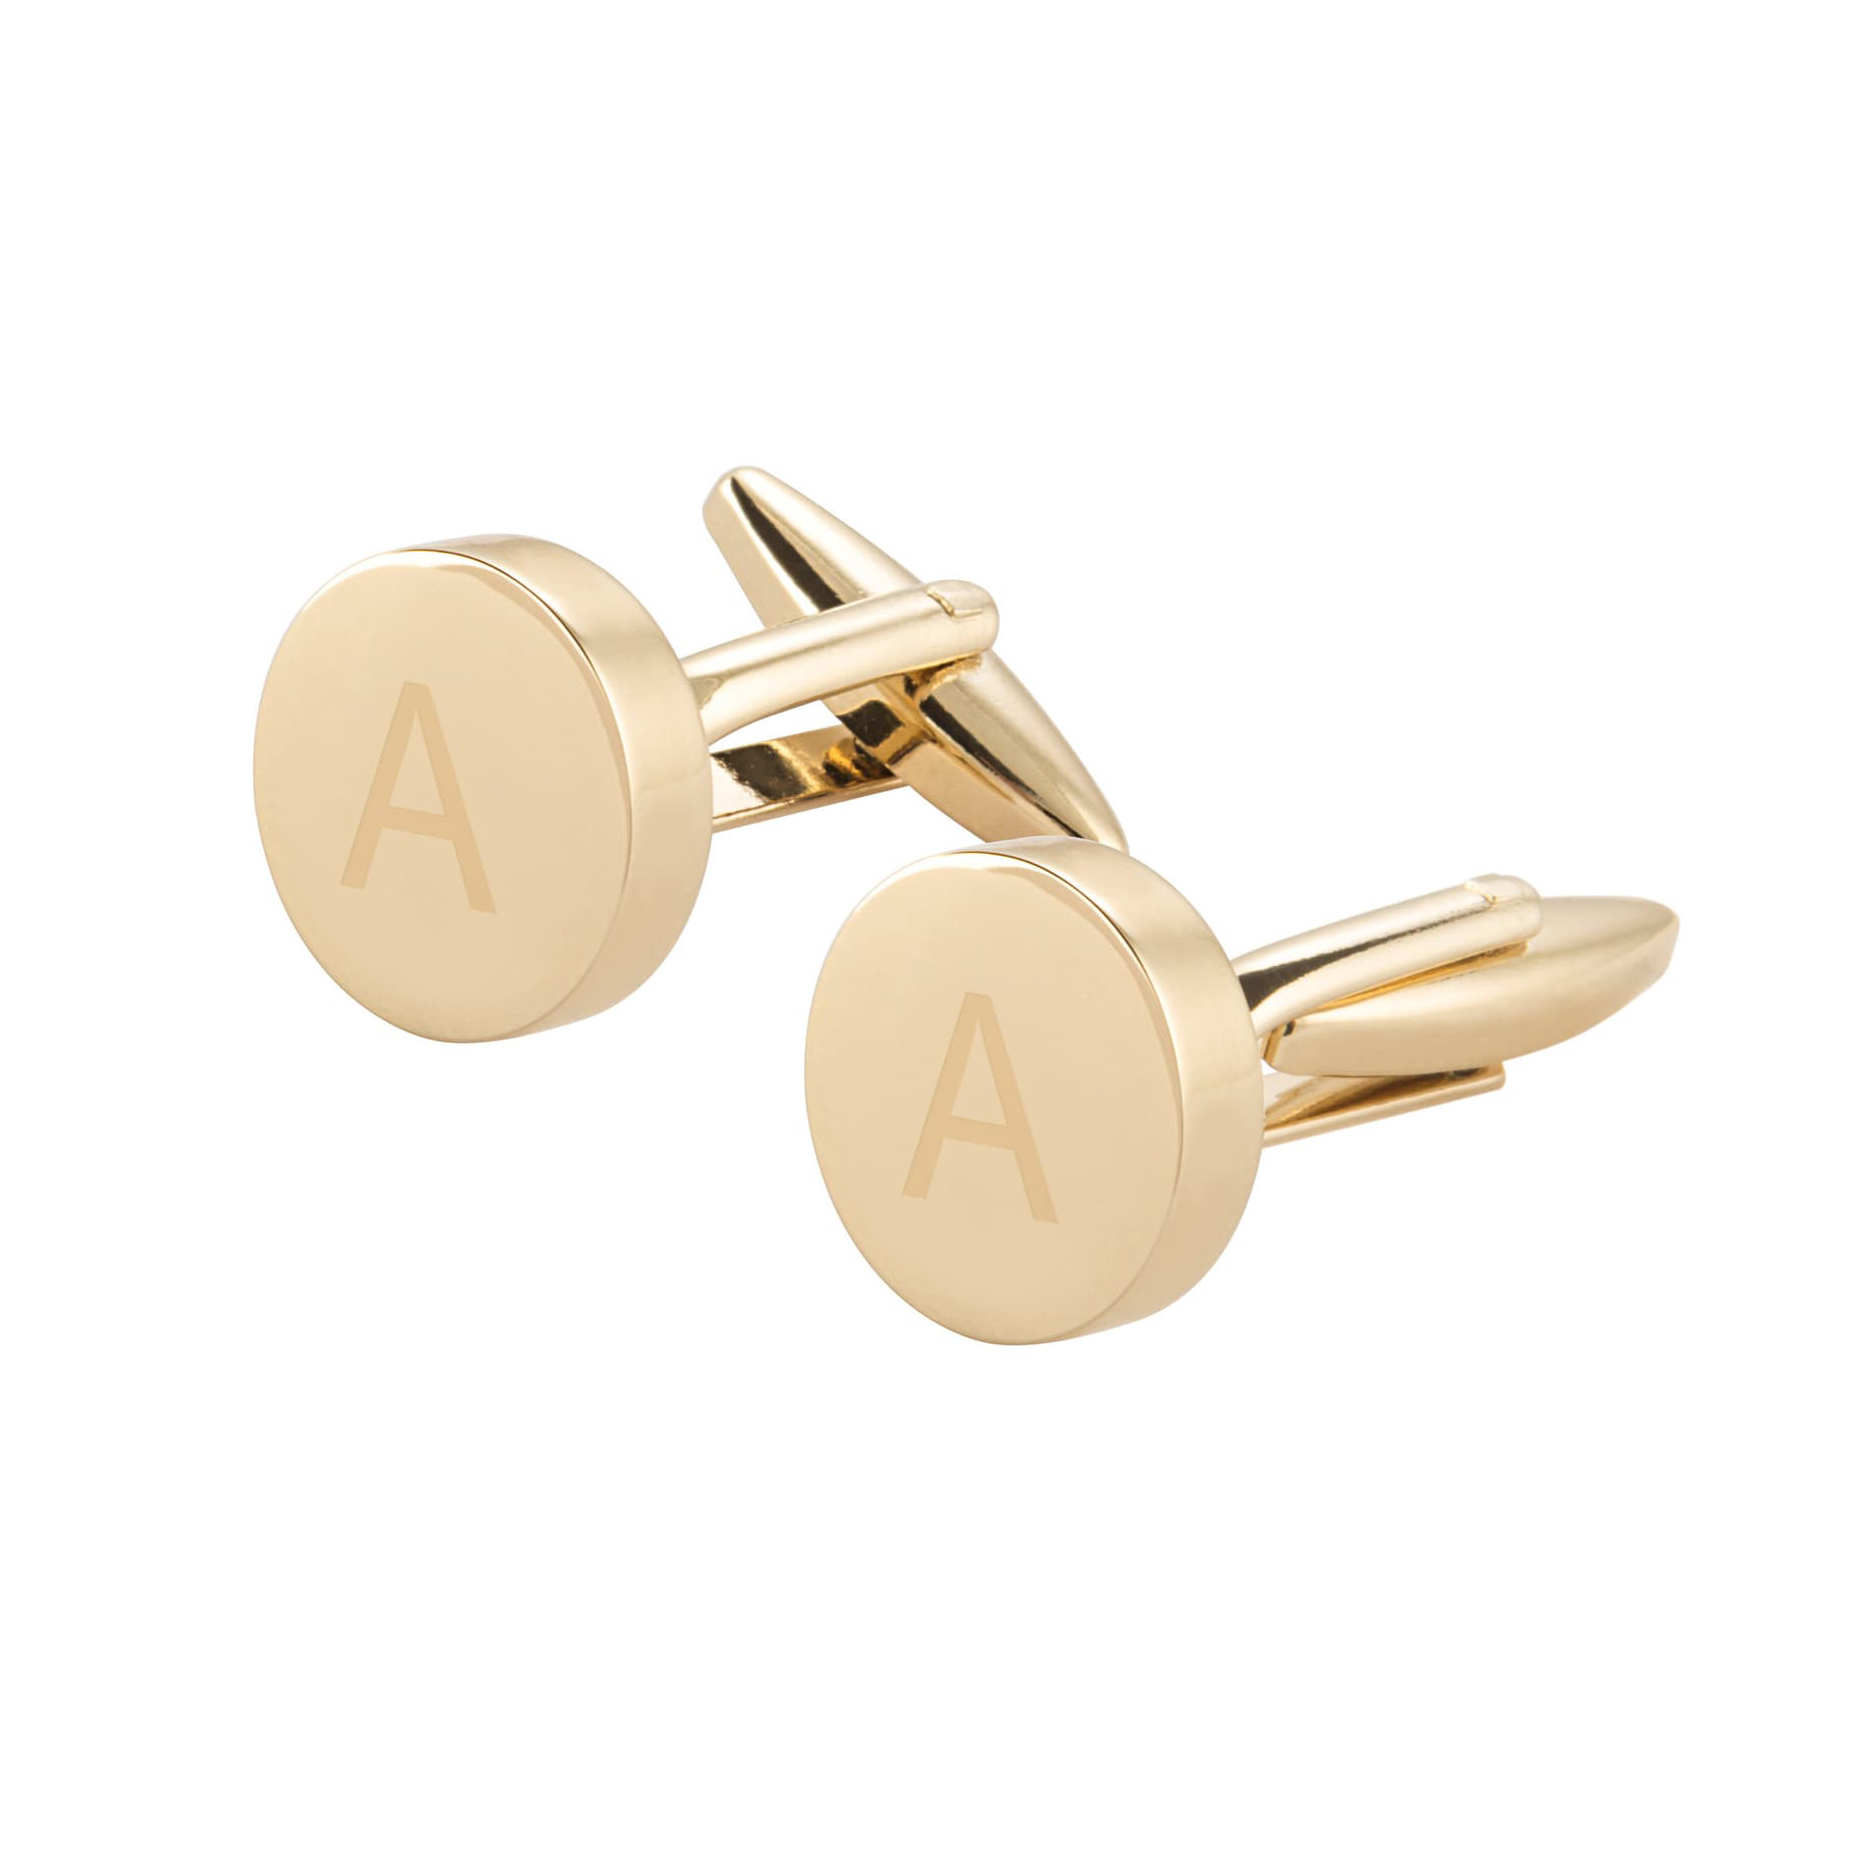 Cathy's Concepts Gold Cufflinks